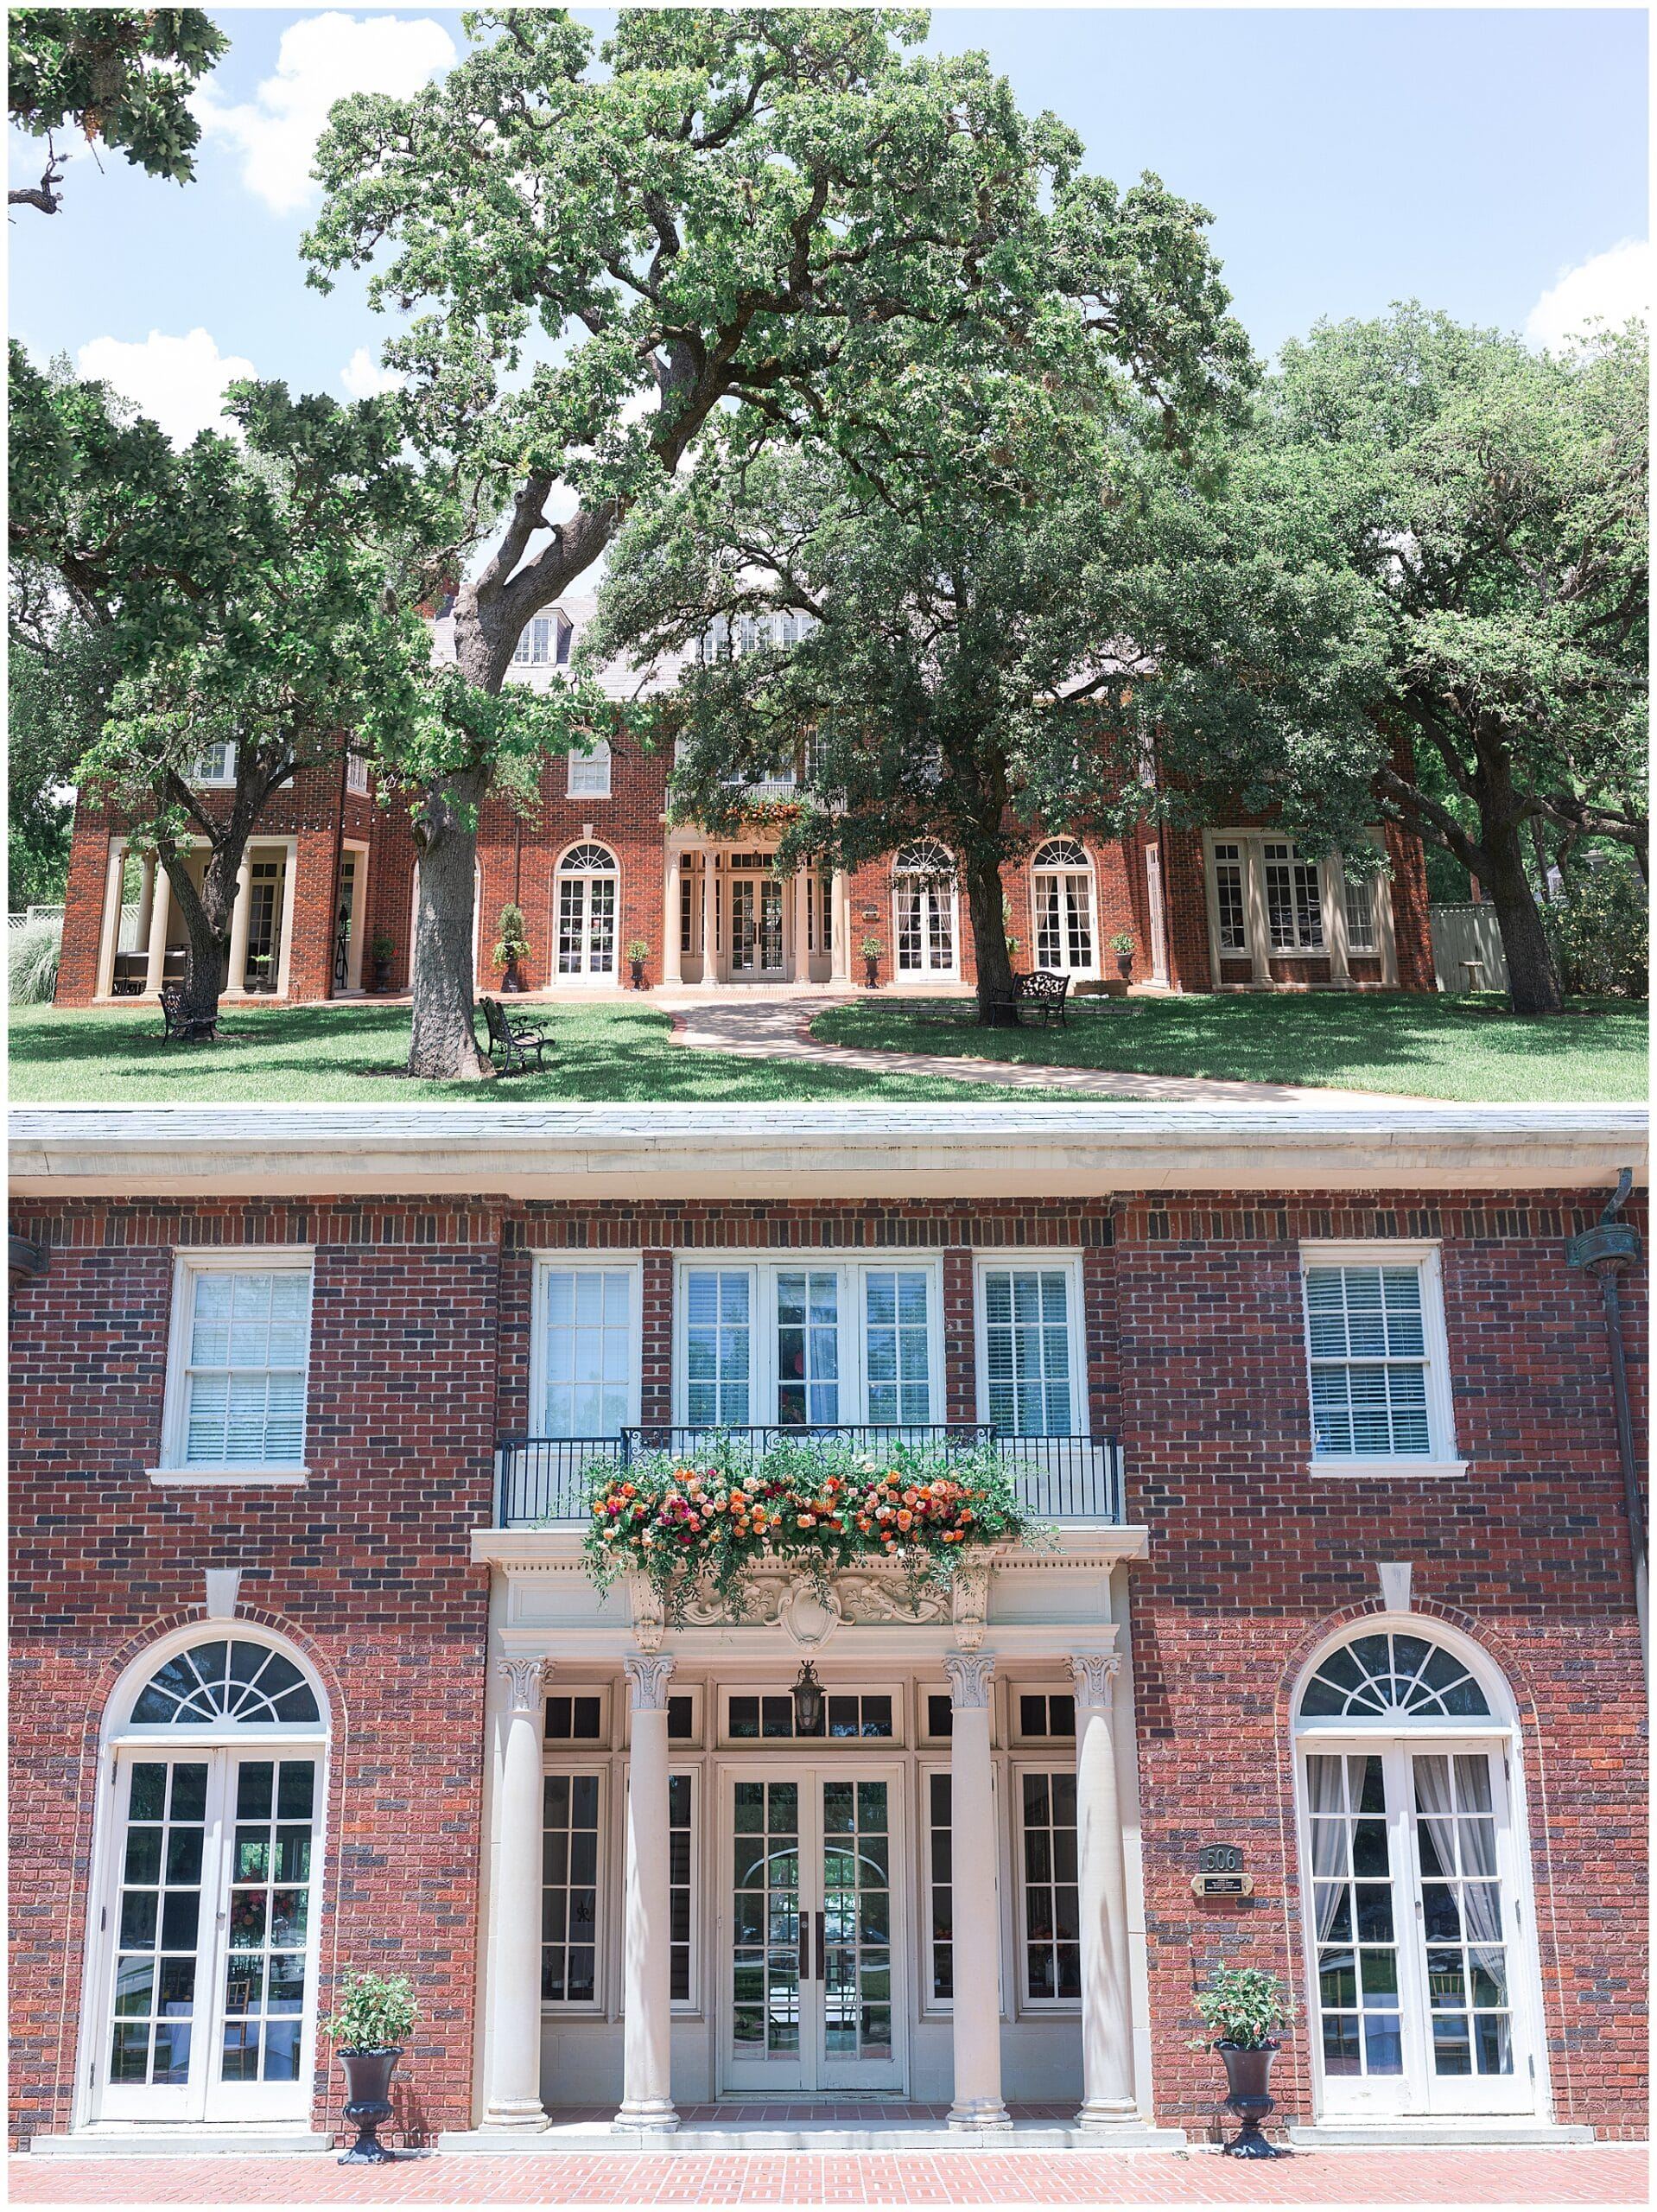 Astin Mansion wedding venue exterior by Swish and Click Photography